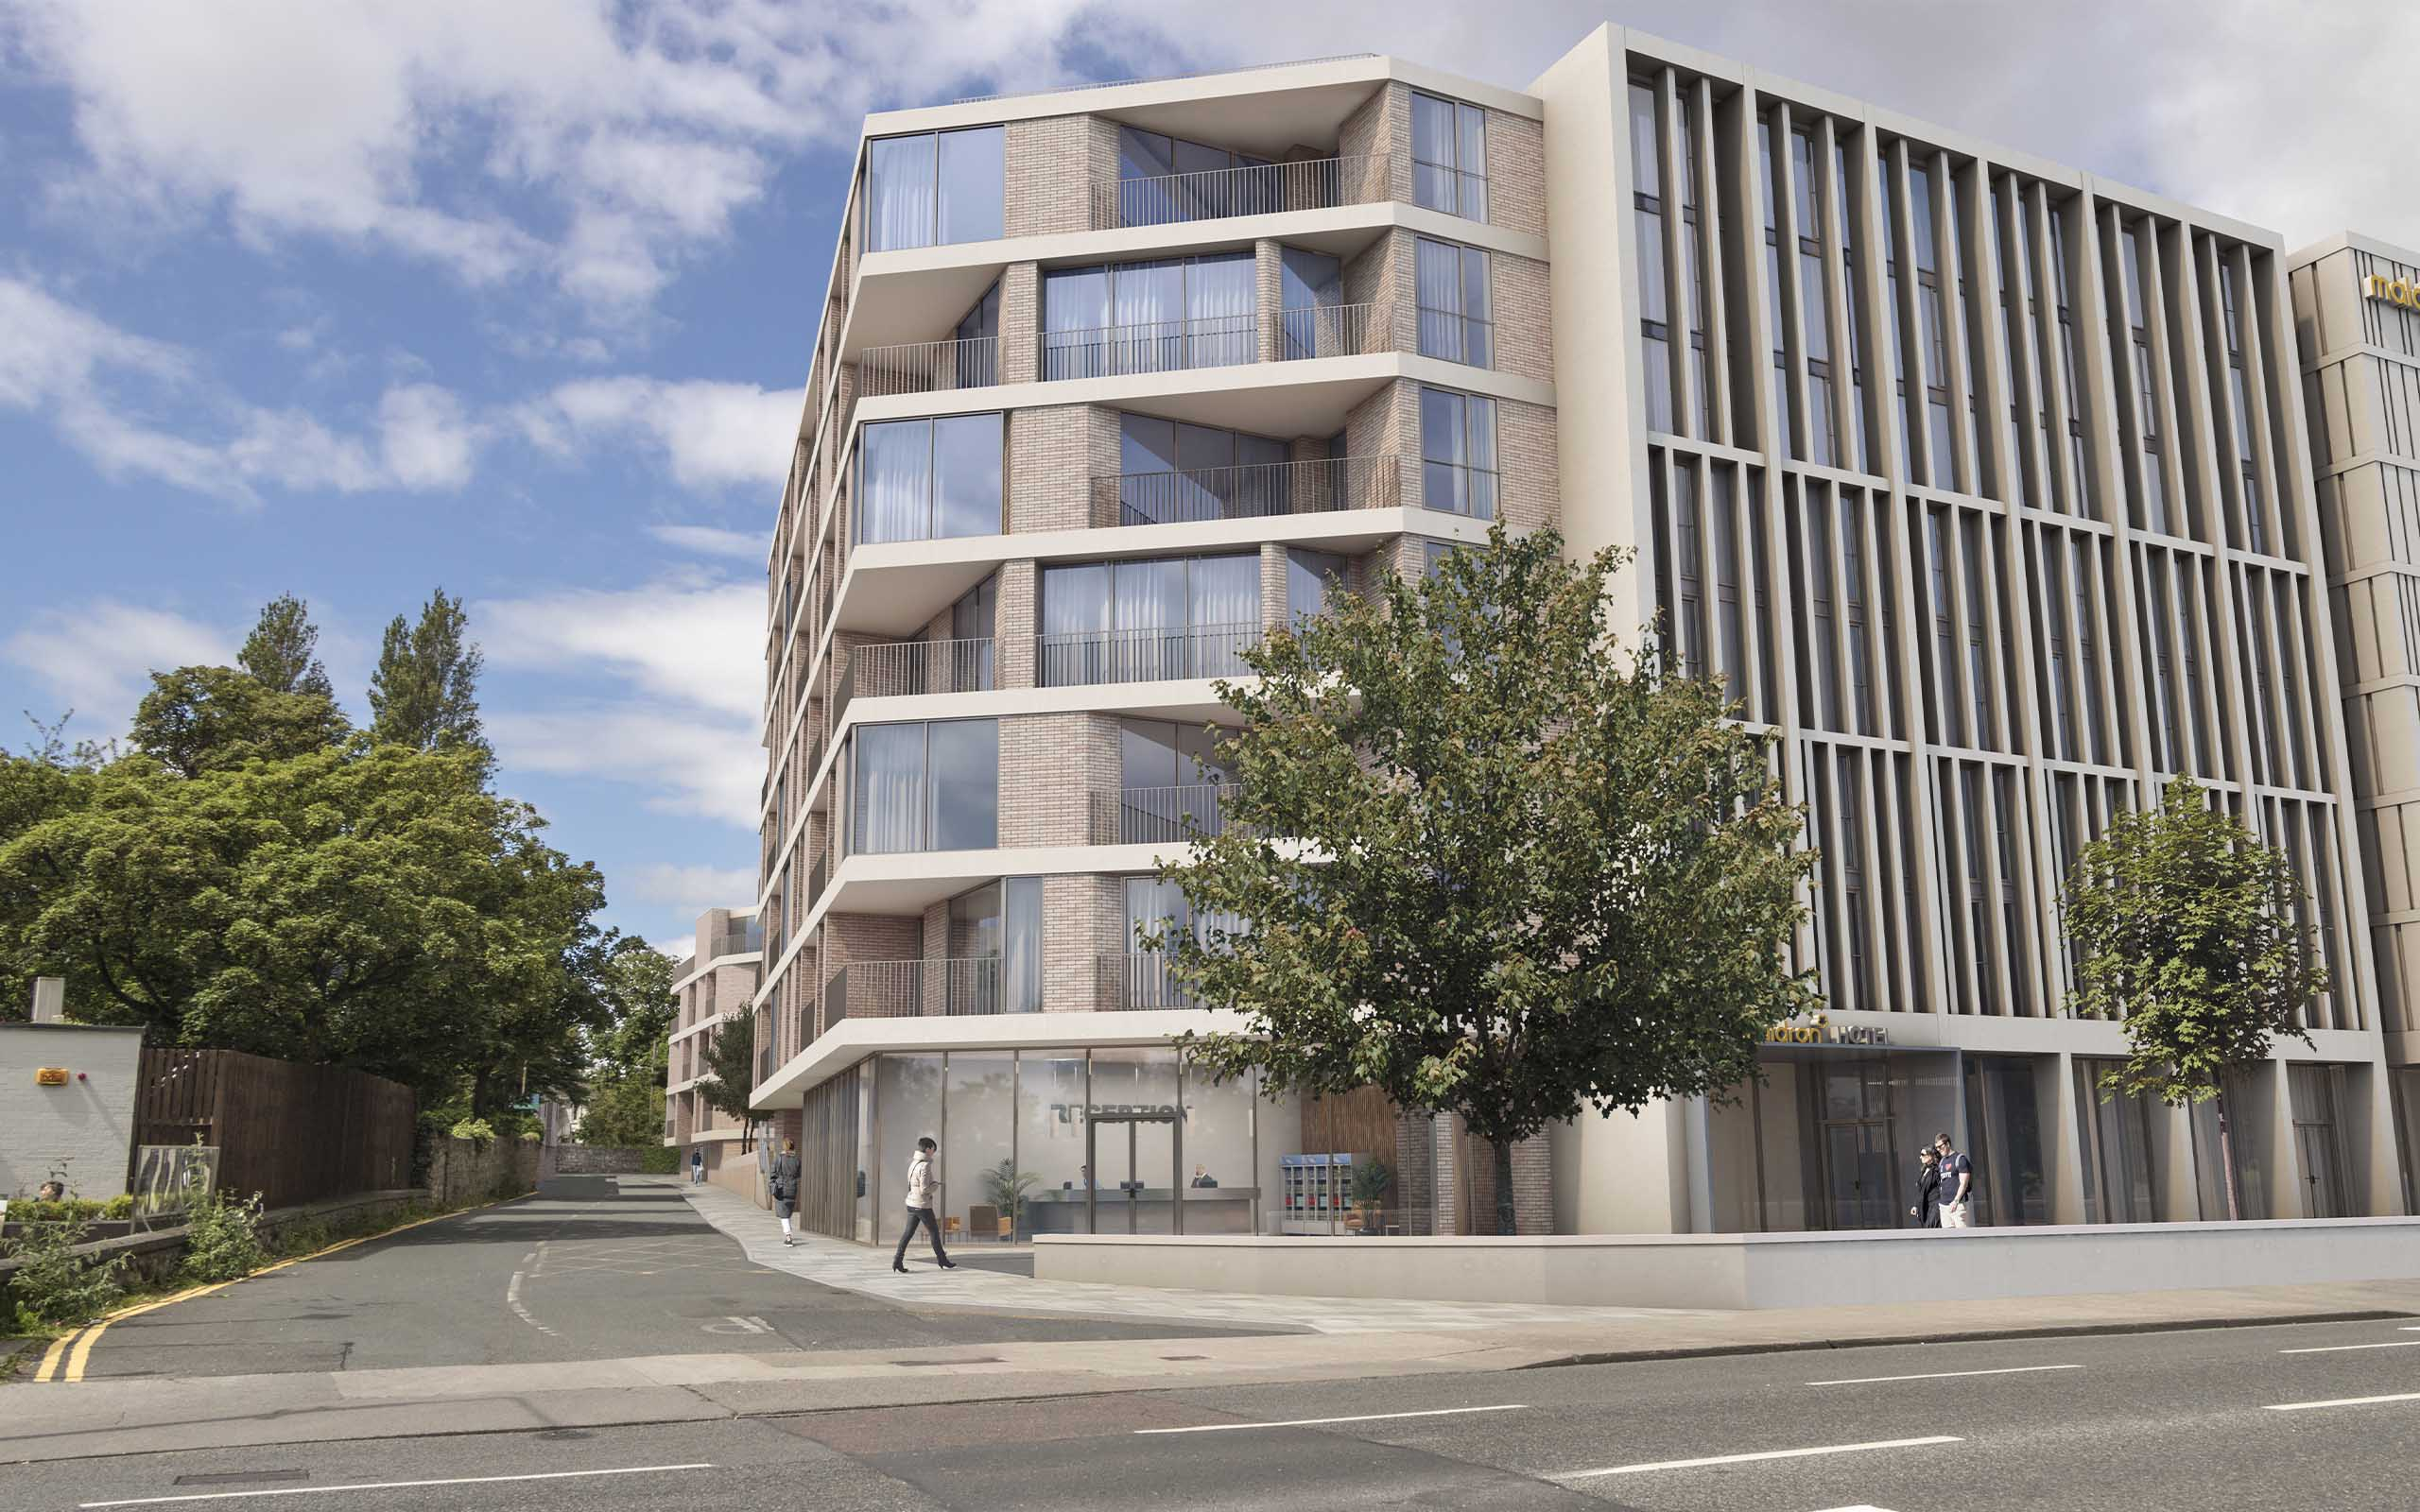 Architectural CGI of new Maldron Hotel on the former site of Tara Towers Hotel in Dublin 4.